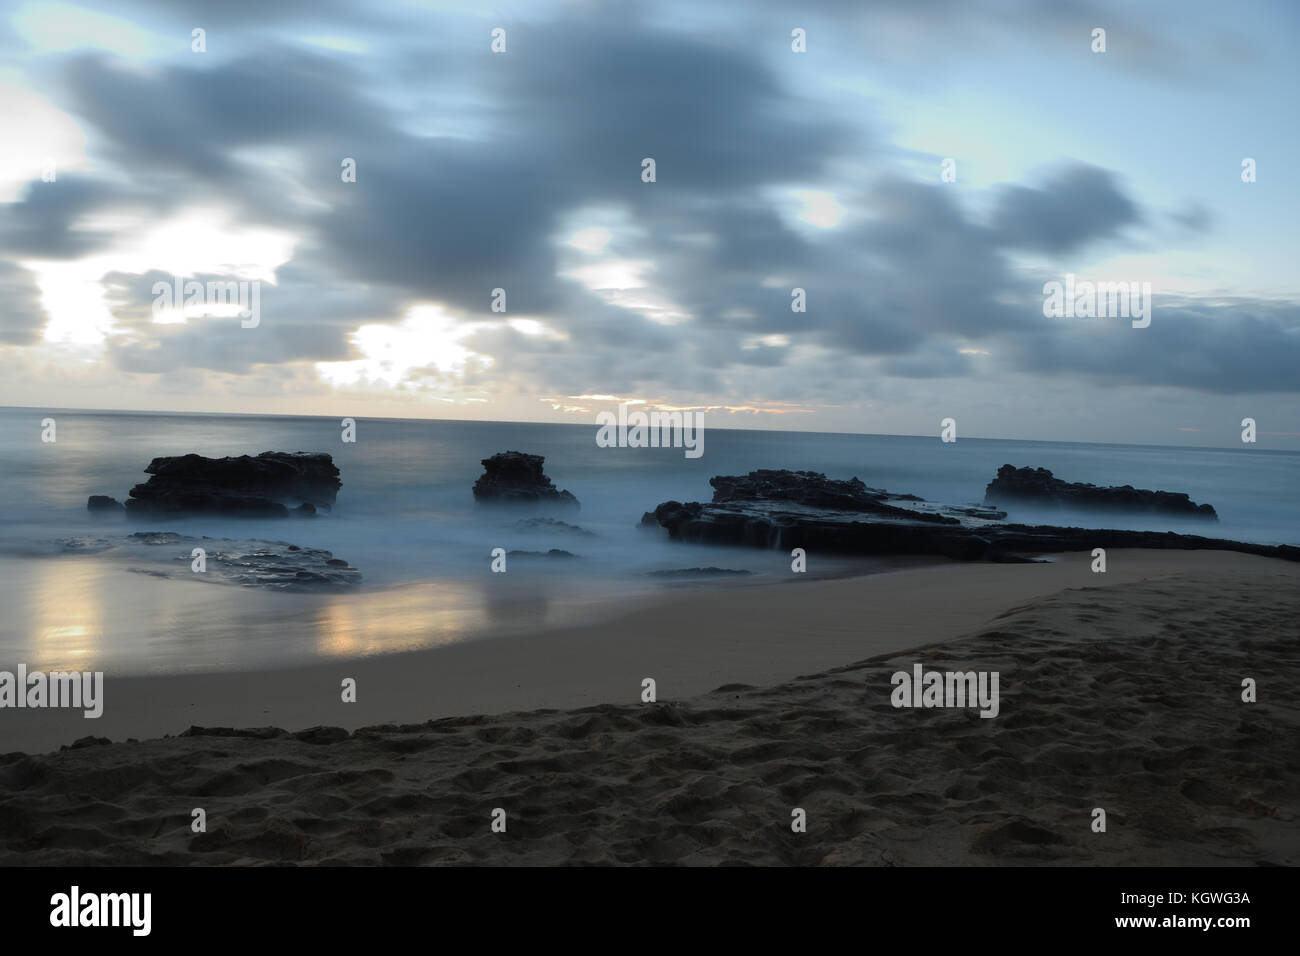 The sun rises over Sandy Beach, on the Southeast side of Oahu, Hawaii - Stock Image